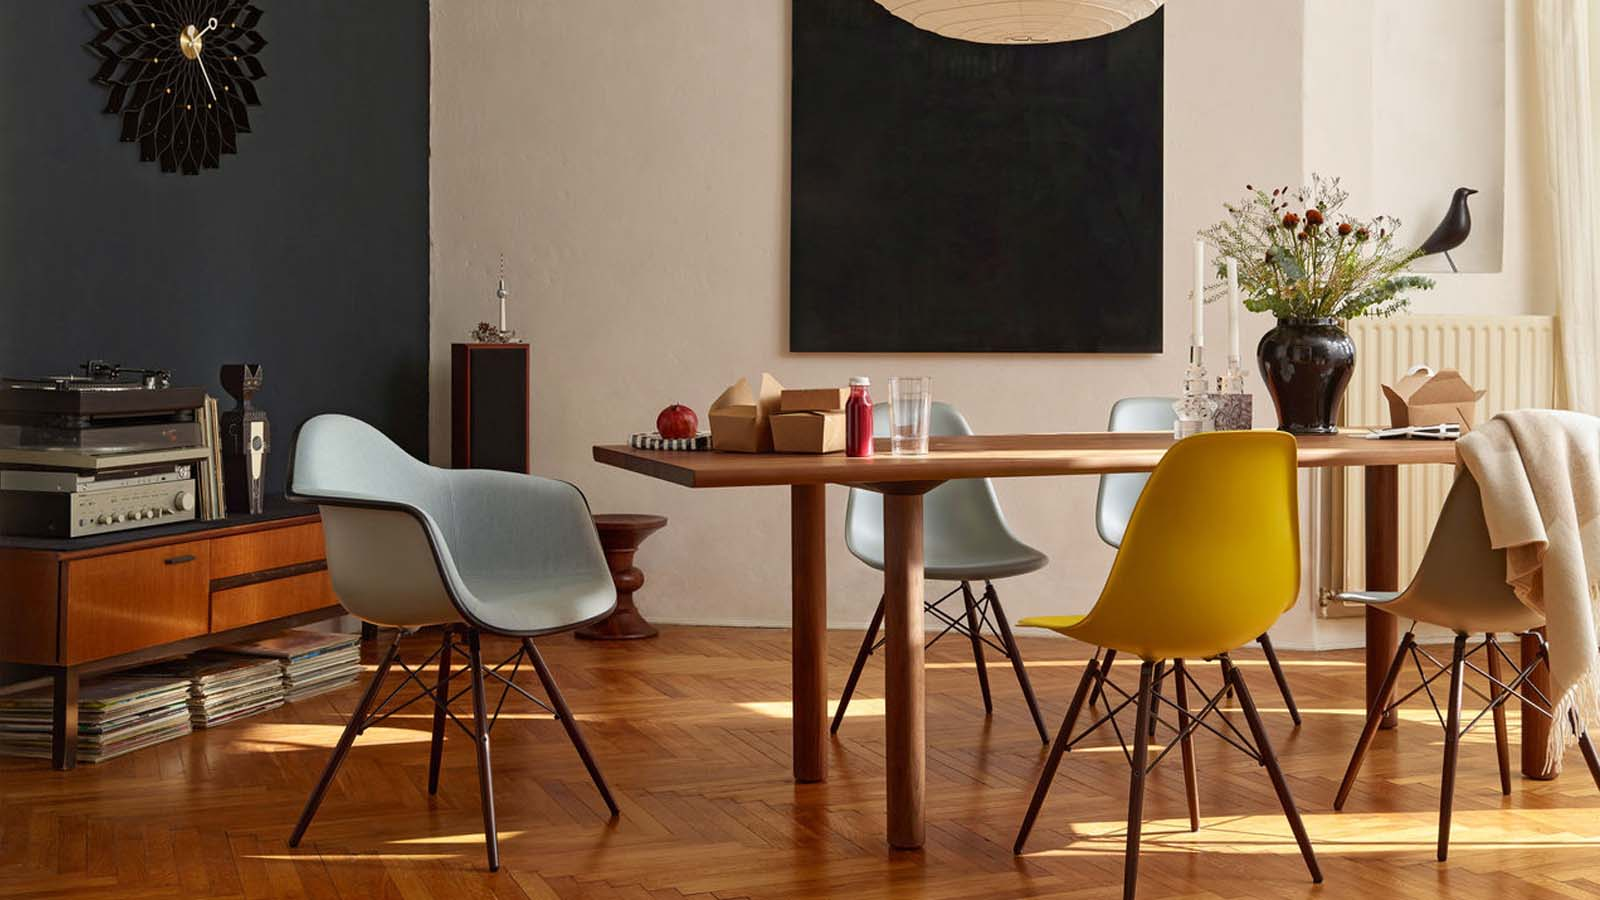 Daily from noon to 5 pm The History Of The Vitra Dsw Chair The Birth Of An Icon